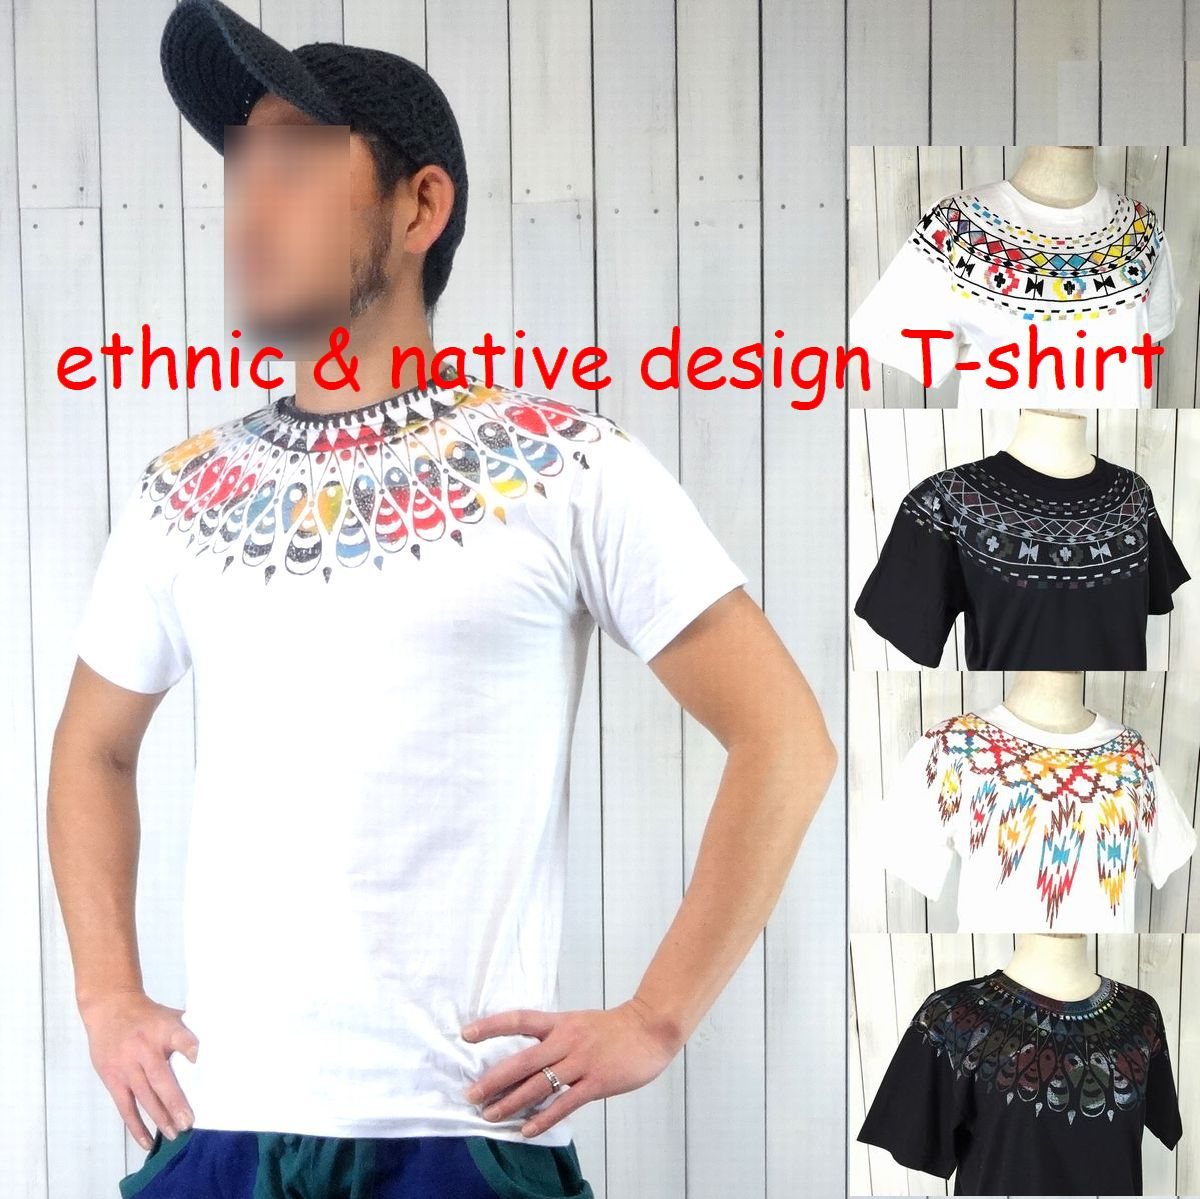 Shirt design rates - Asian Ethnic And Ethnic Native Design T Shirt All 6 Pattern Psychedelic Hippie Men Women Unisex